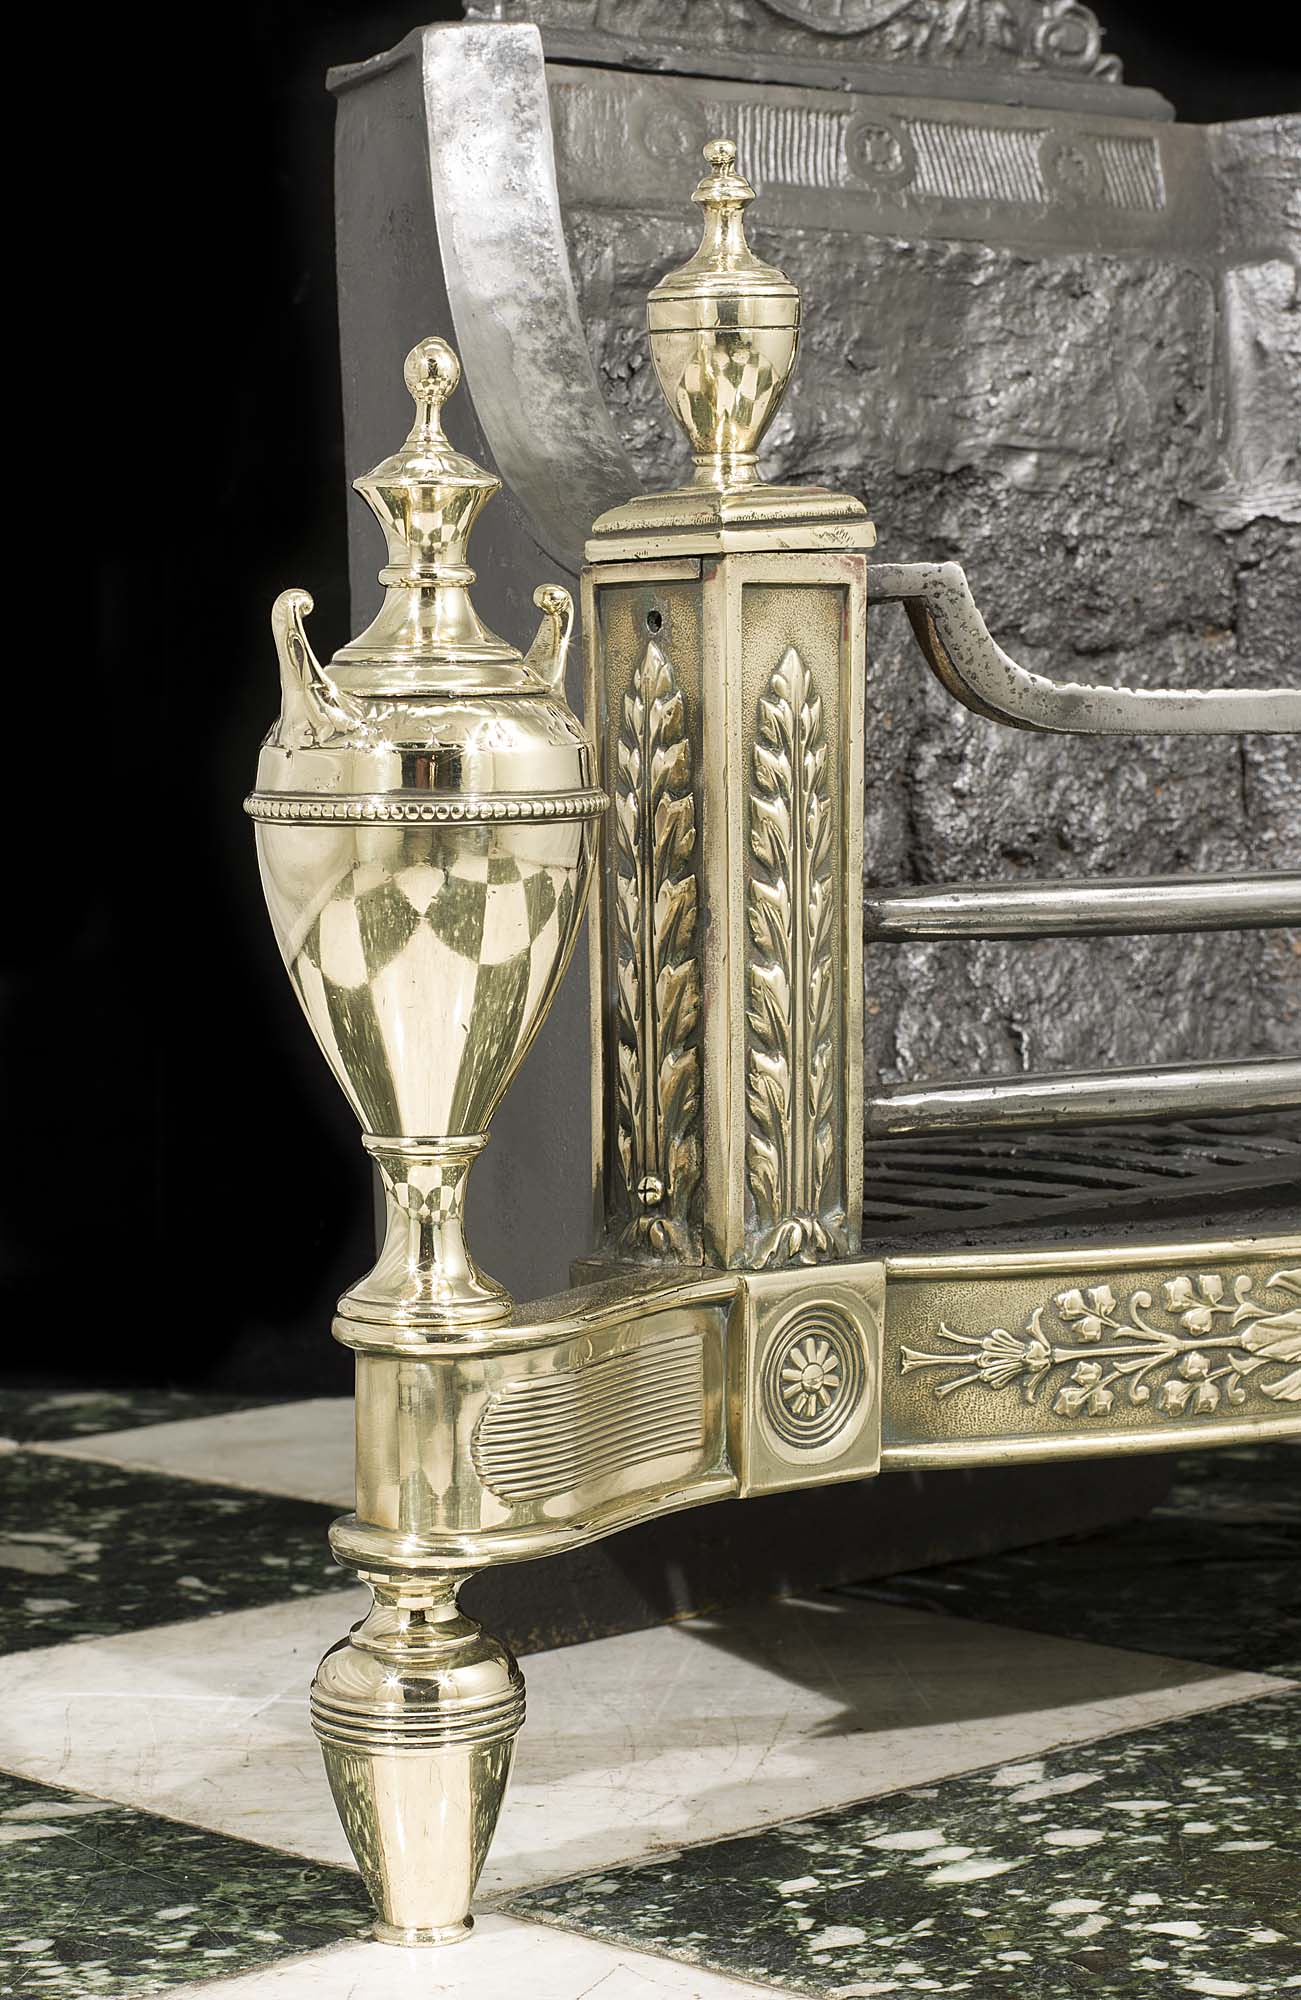 A Neoclassical style Victorian iron and brass antique fire basket